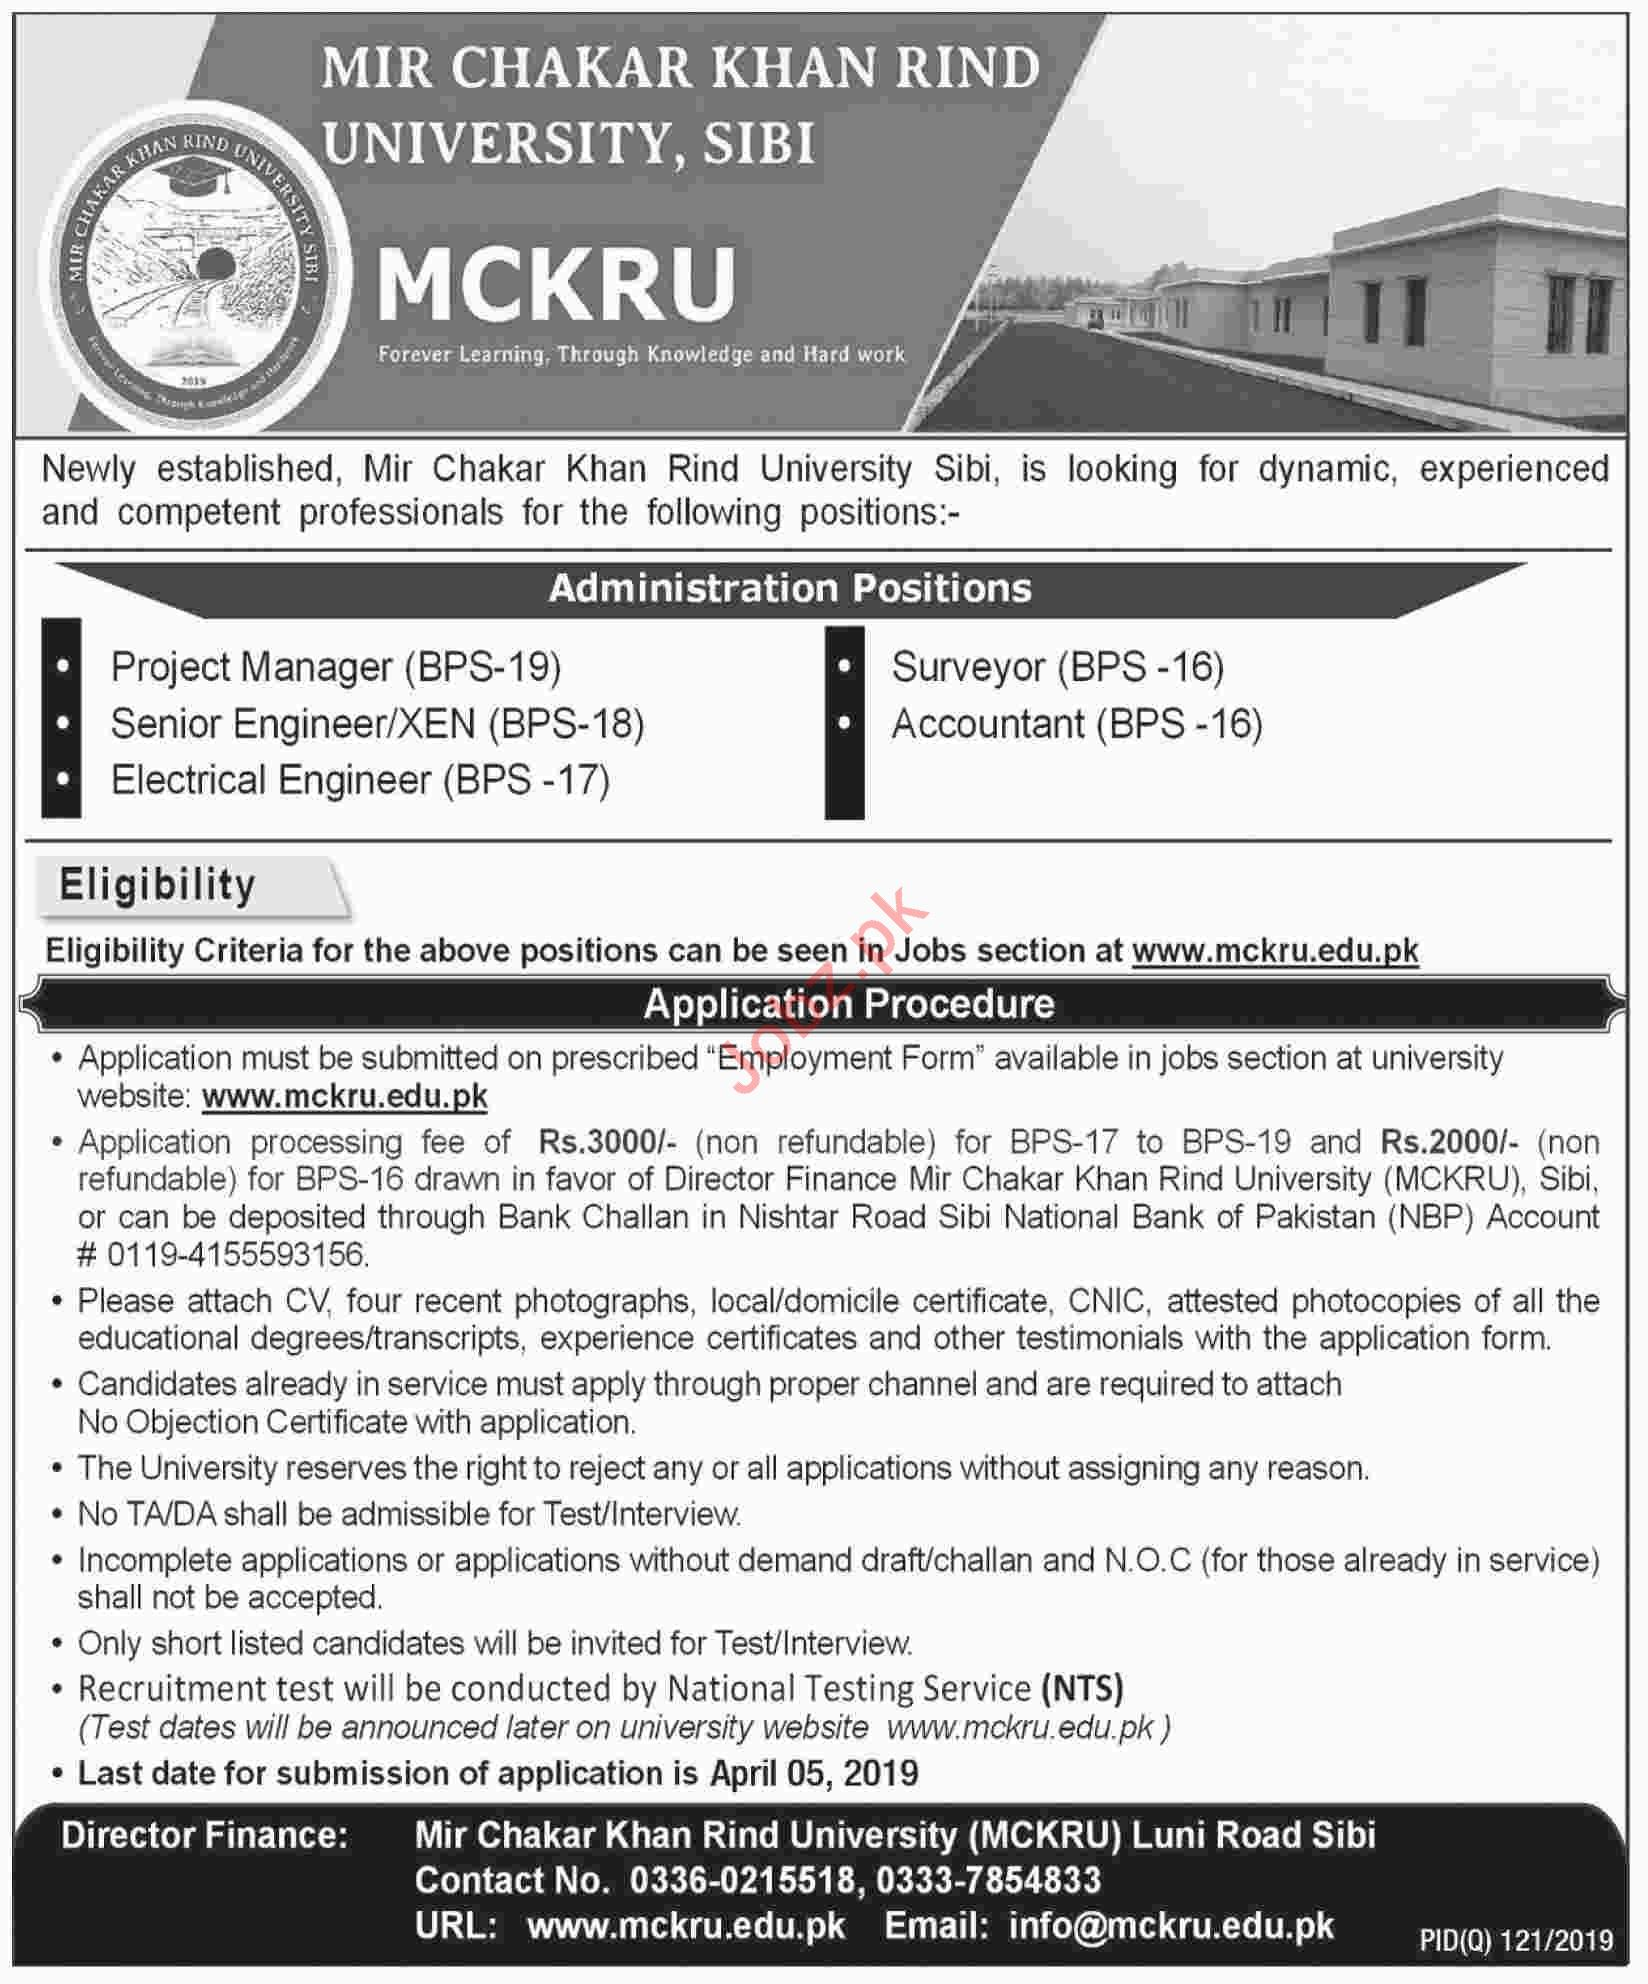 Management Jobs in Mir Chakar Khan Rind University MCKRU